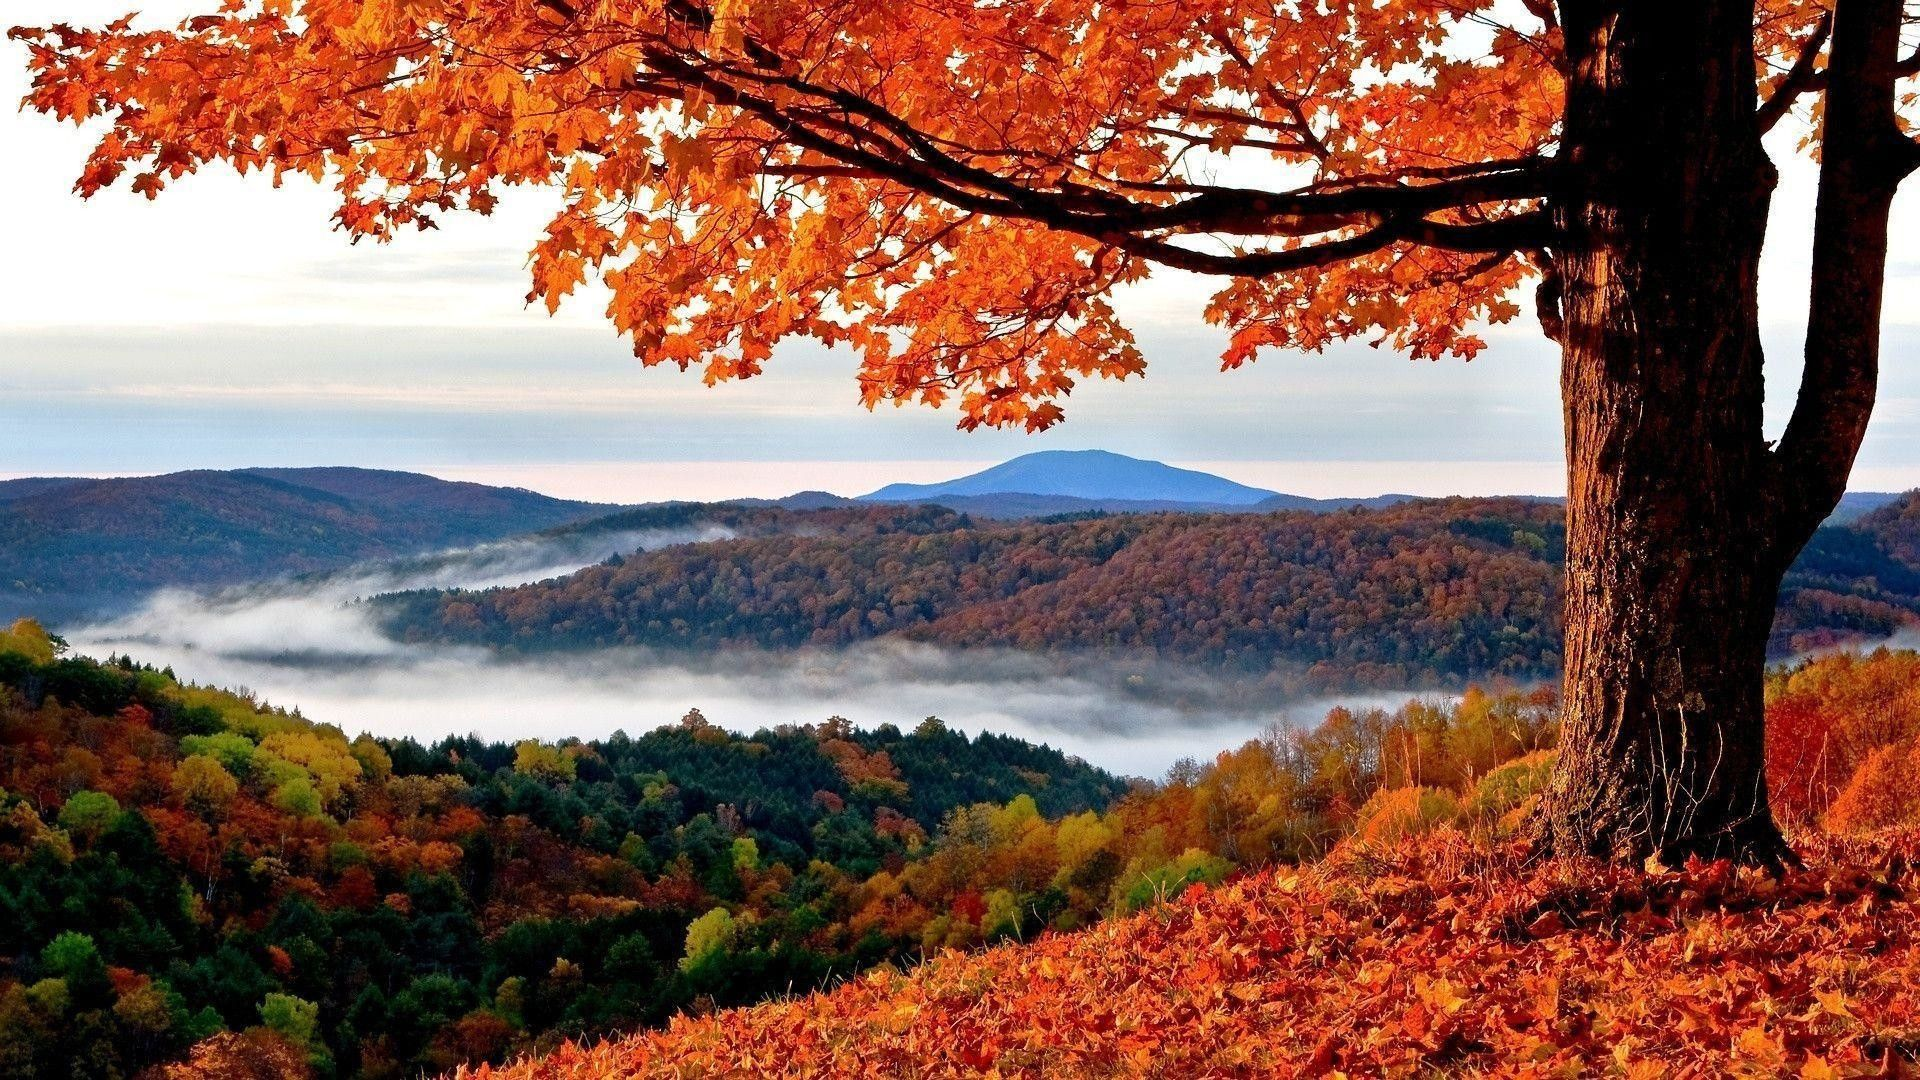 Wallpaper Collection 37 Best Free Hd Autumn Desktop Wallpaper Background To Download Pc In 2020 New England Fall Foliage Fall Getaways New England Foliage